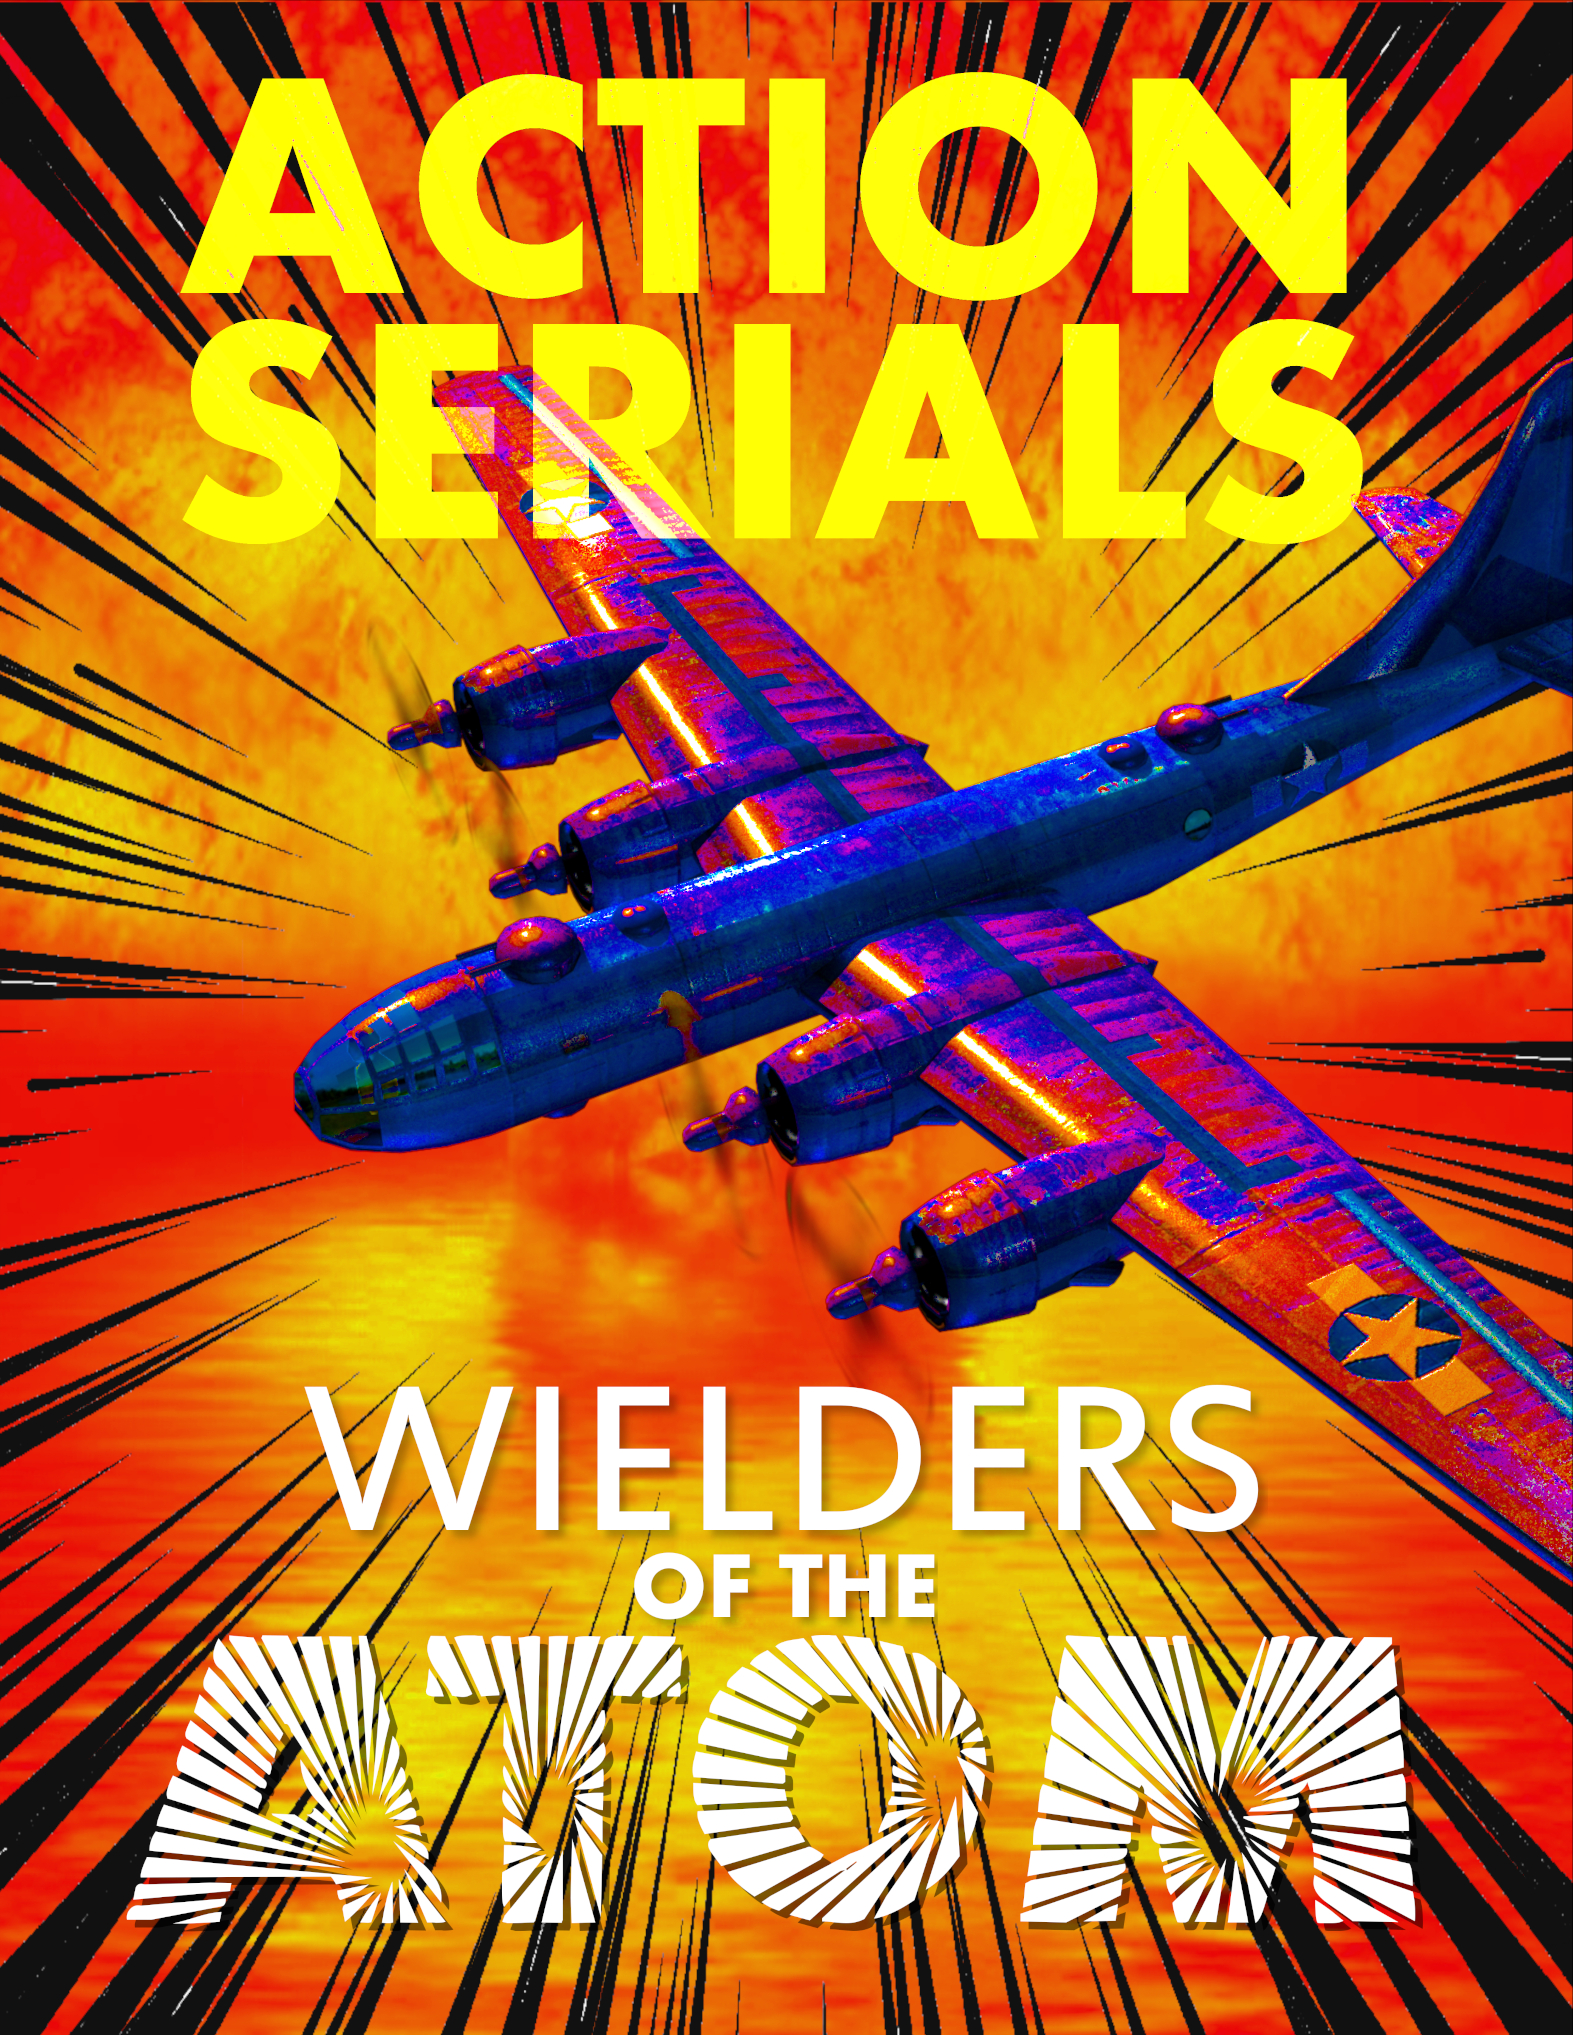 [PDF] [EPUB] Wielders of the Atom (Action Serials #2) Download by R.J. Nevets